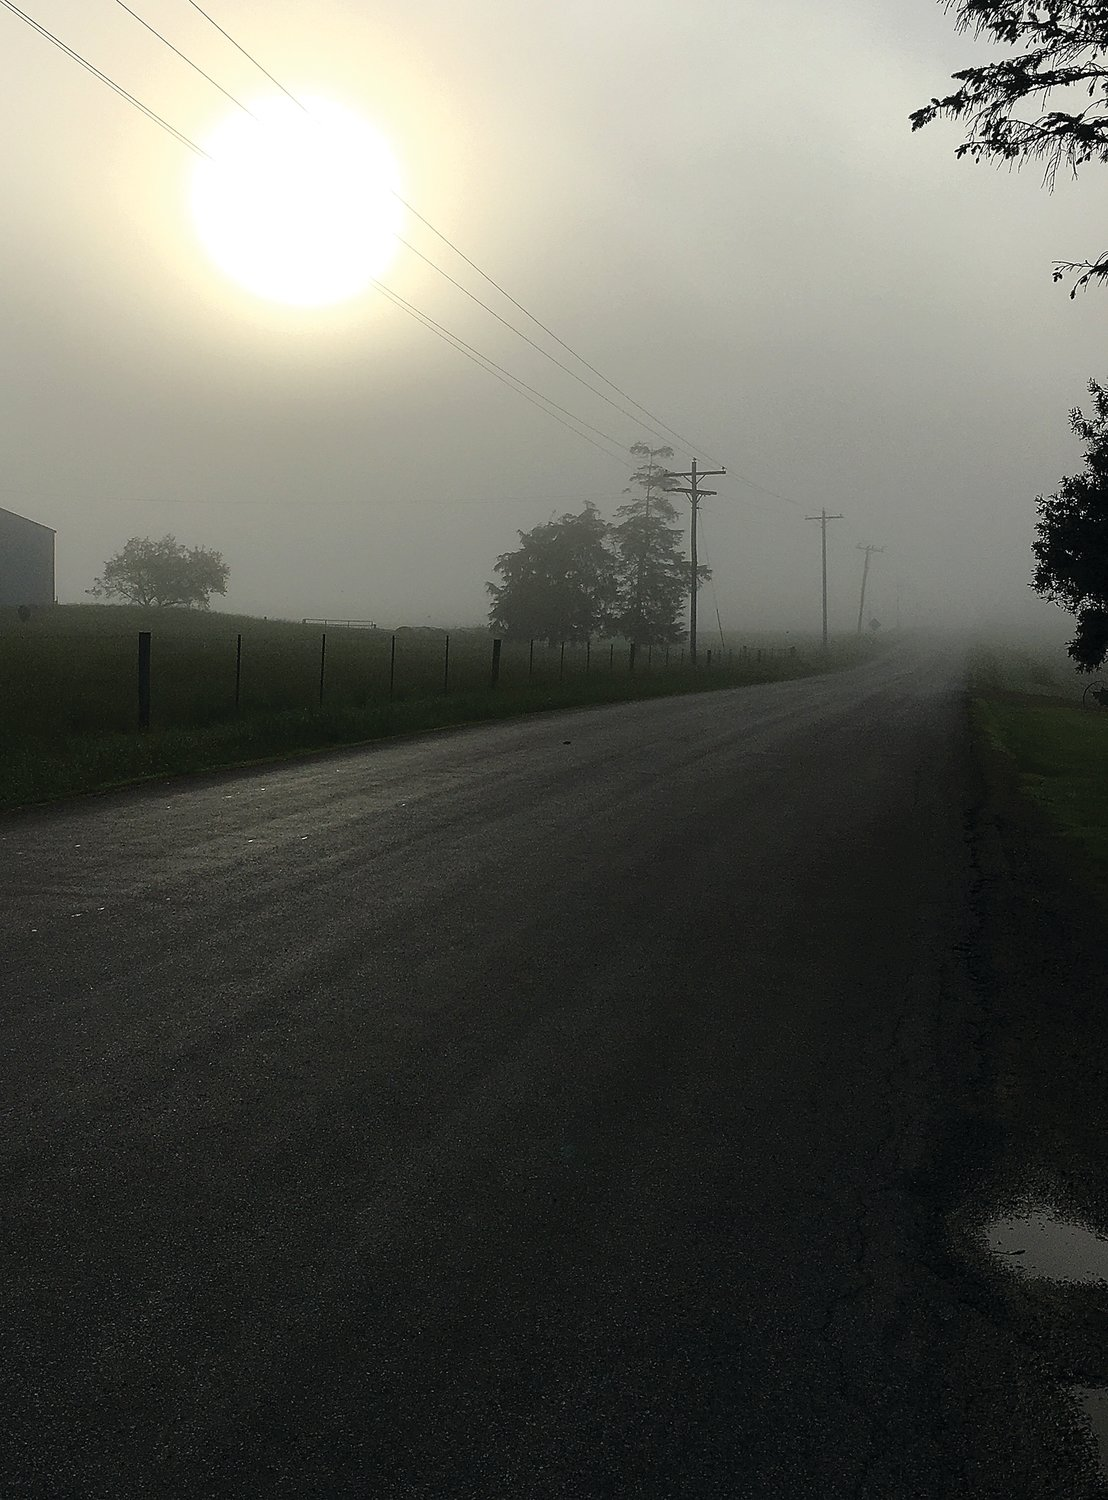 Just a few miles a way from the cows in the field, fog gives the sun an eerie glow at the intersection of West Council Hill Road and Ill. 84.